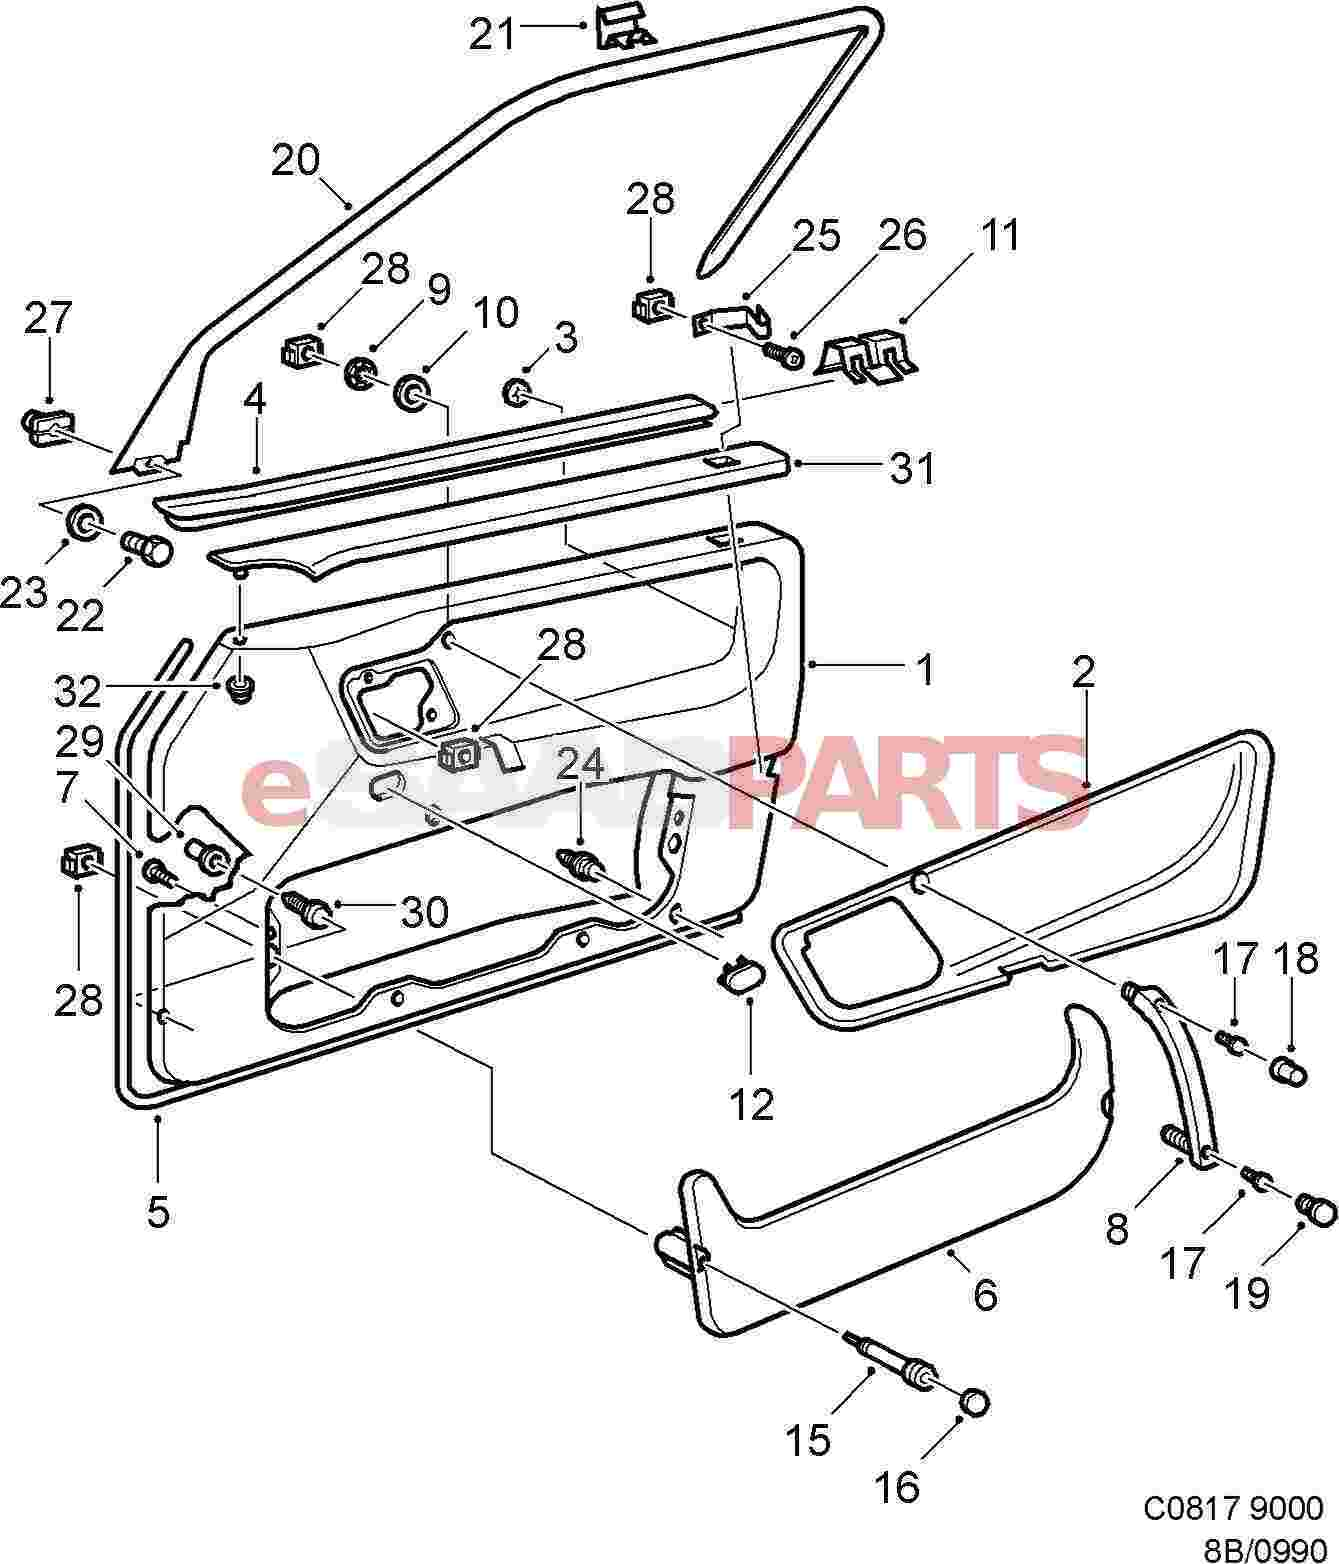 4818910 saab door panel genuine saab parts from esaabparts com rh esaabparts com Saab Parts Saab Parts